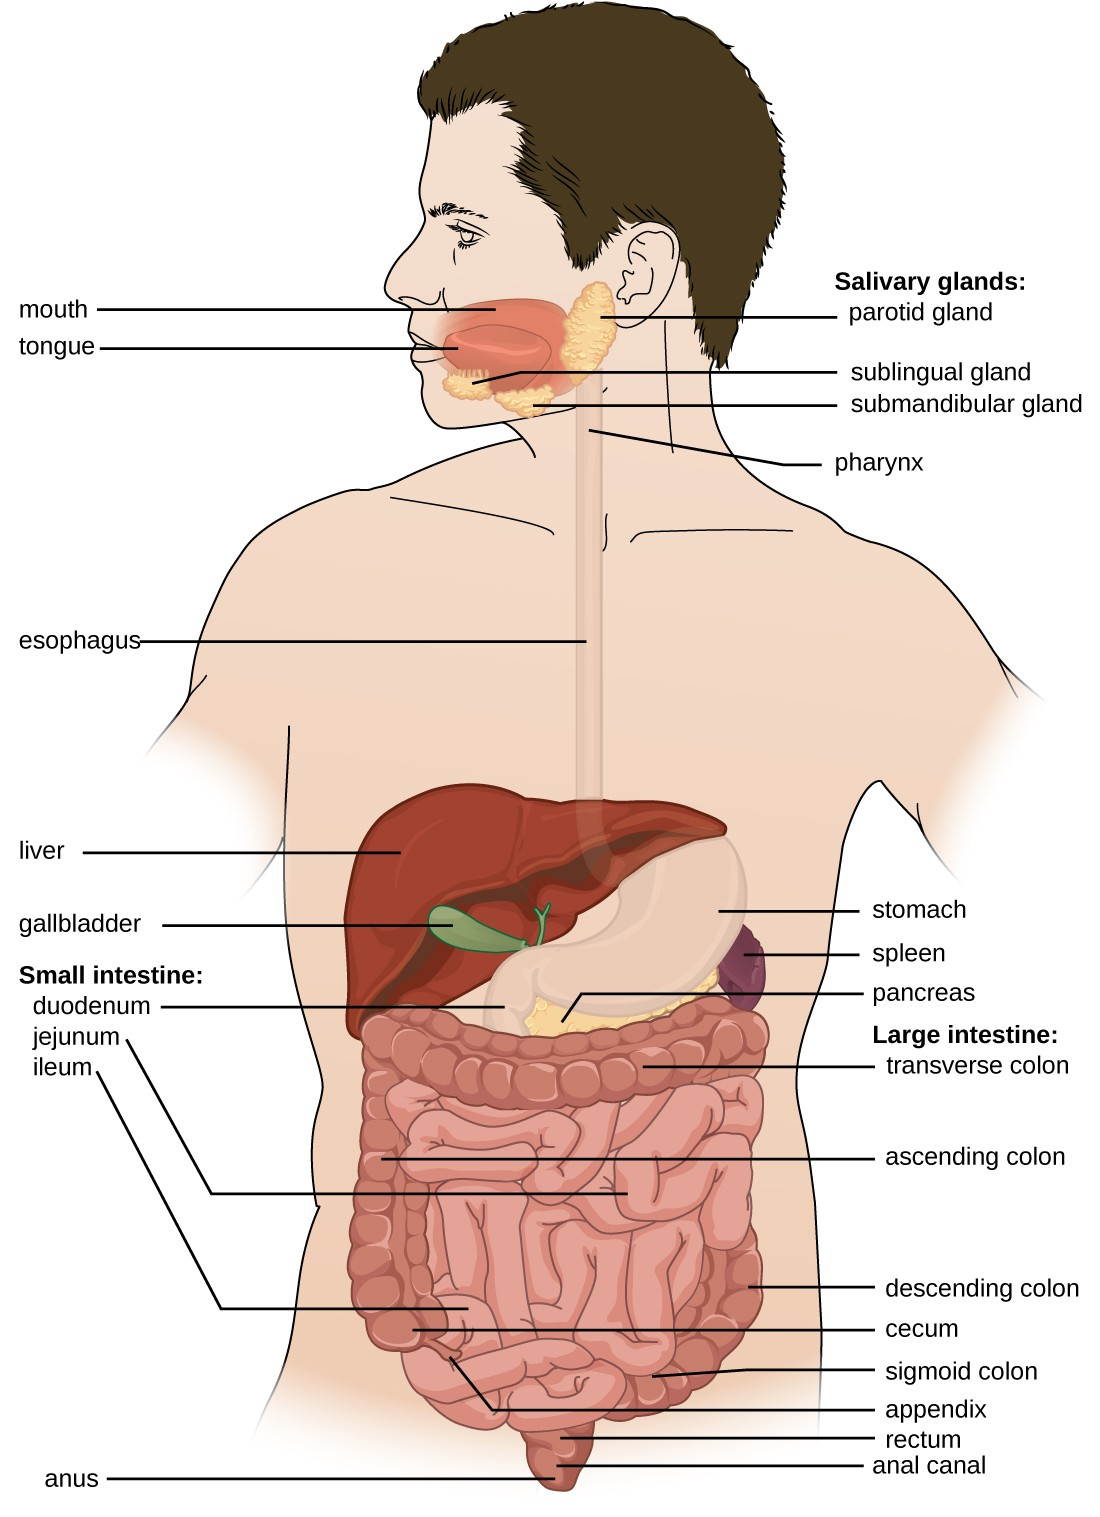 Digestive System Diagram Anatomy And Normal Microbiota Of The Digestive System Microbiology